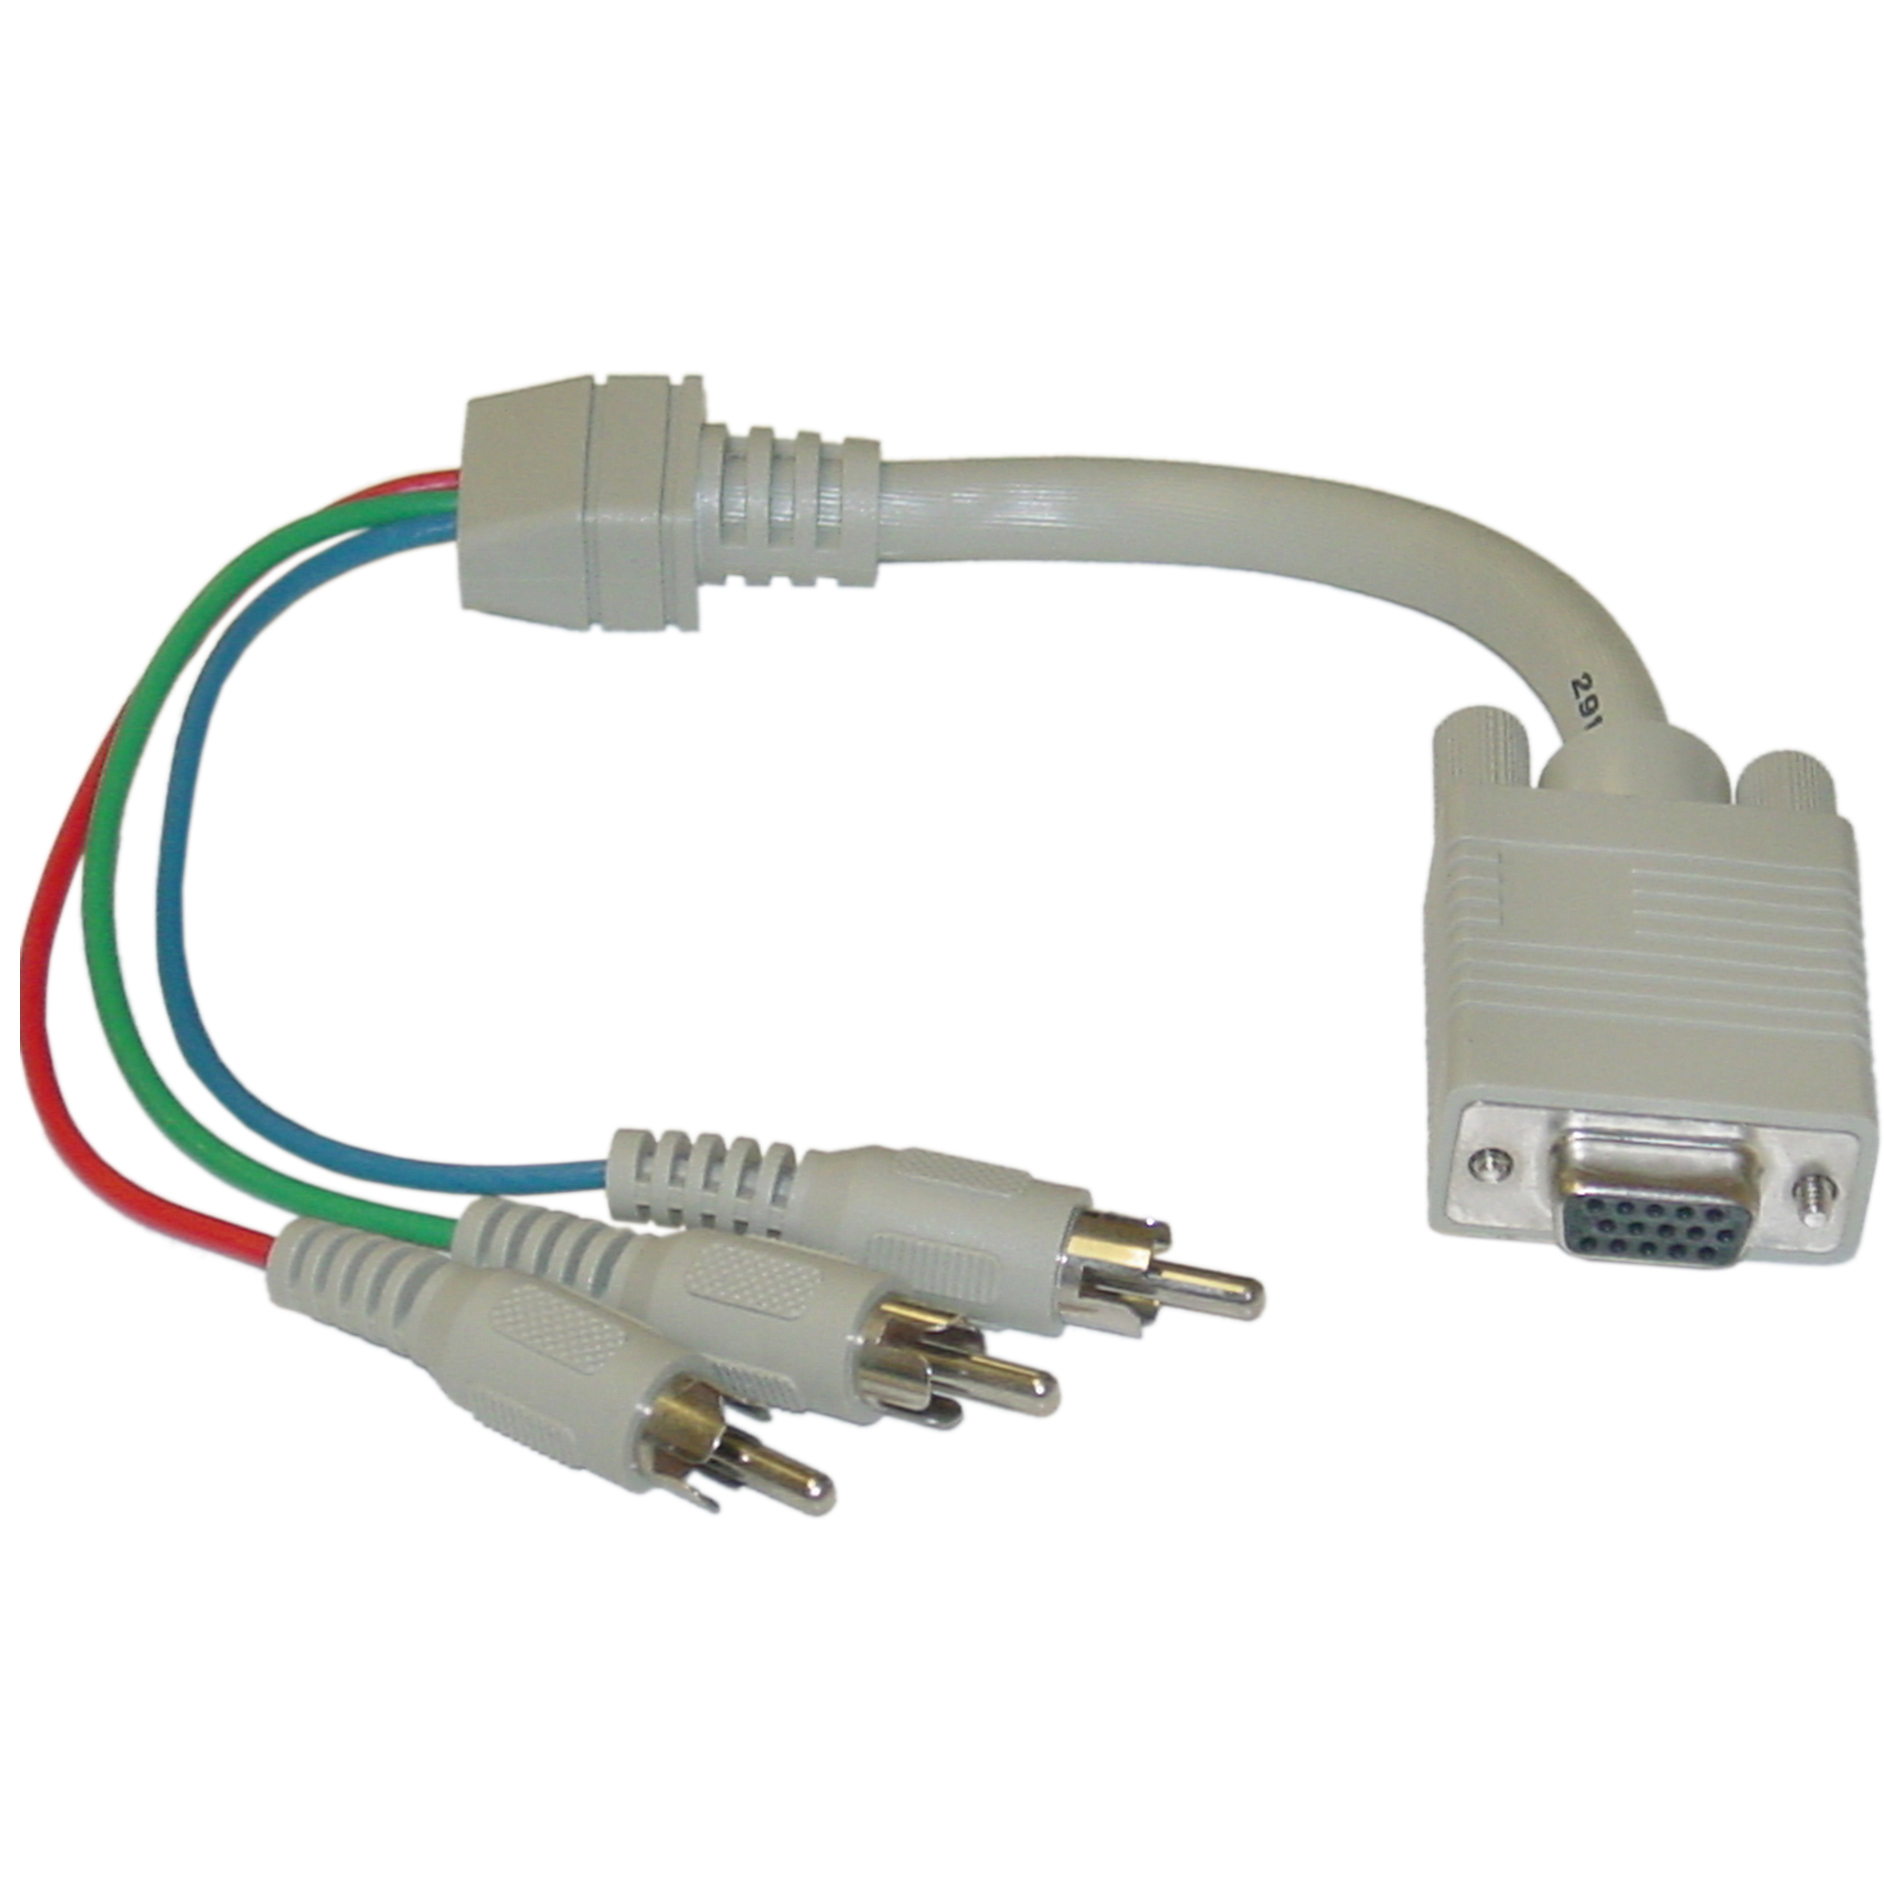 Usb To Rca Wiring Schematic | Manual E-Books - Wiring Diagram Of Obd2 Data Cable To Usb For Pc